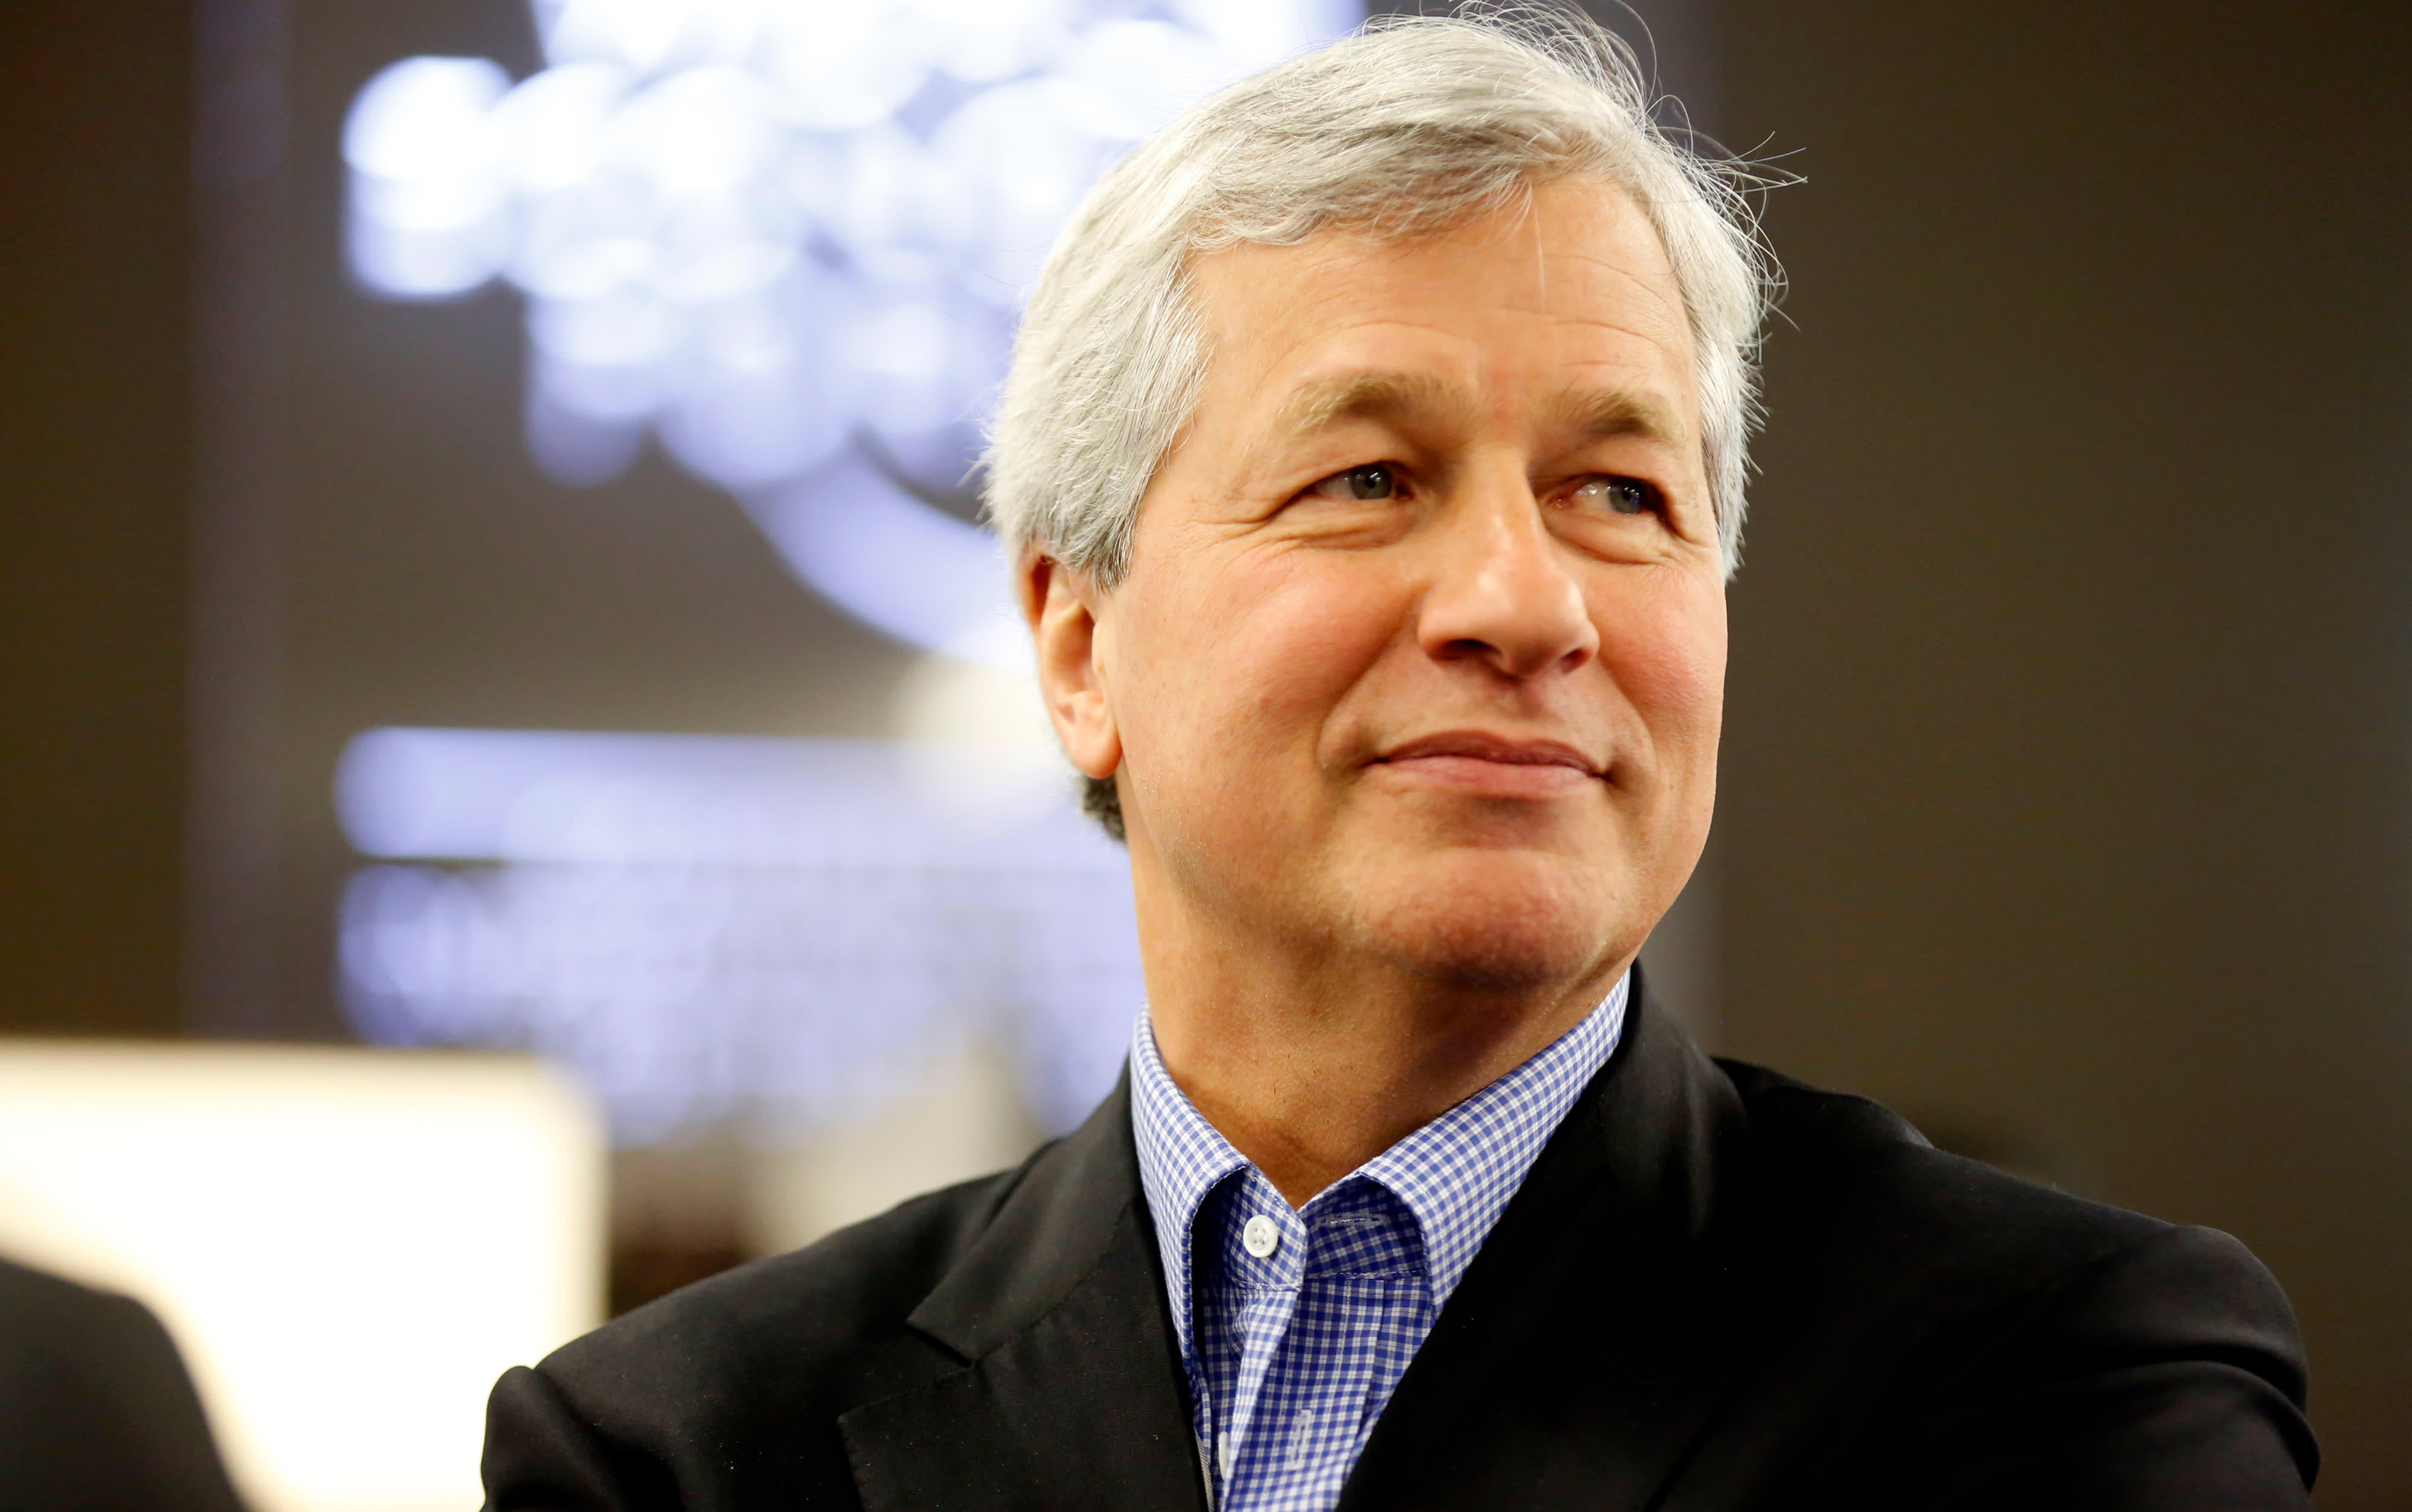 JPMorgan Chase beats profit estimates on strong trading, $5.2 billion release of loan-loss reserves - CNBC